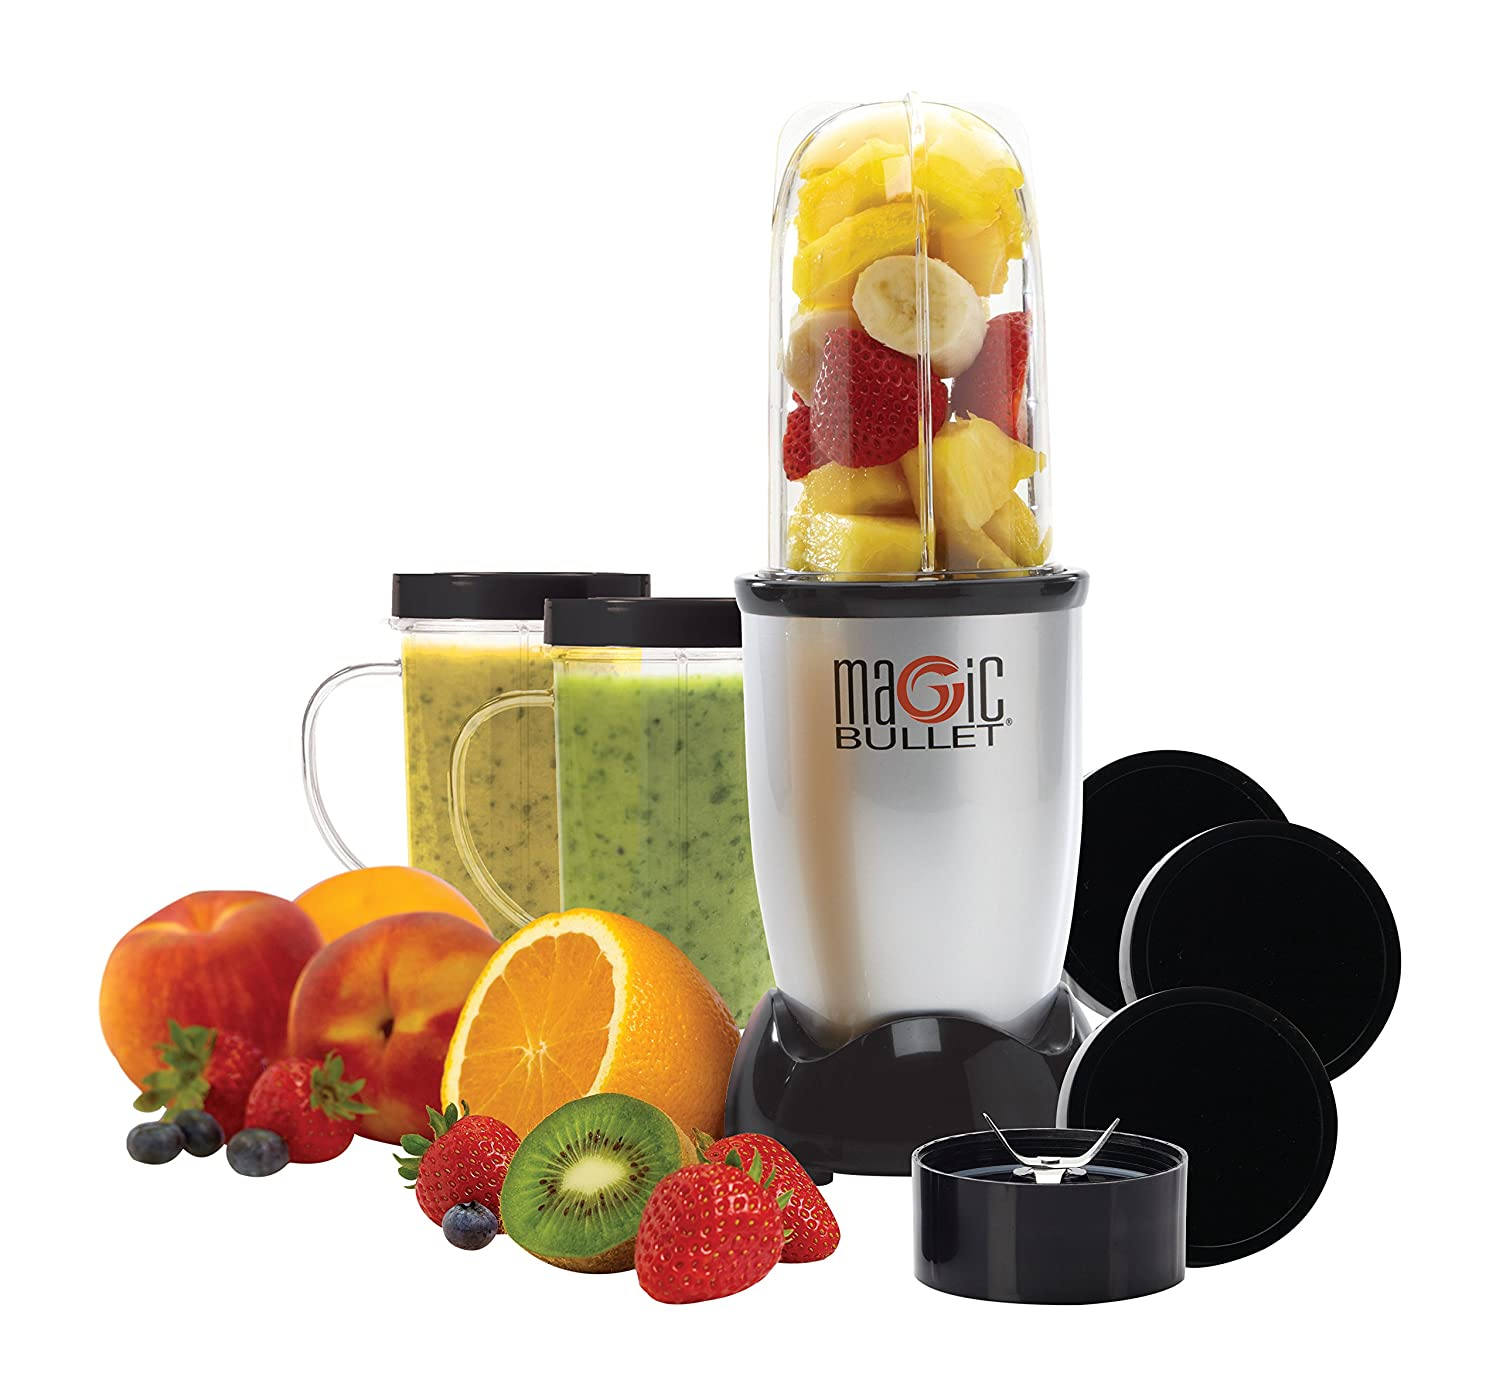 Magic Bullet (Silver) Blender/Mixer, 11-piece Set (Certified Refurbished) RMBR-1101